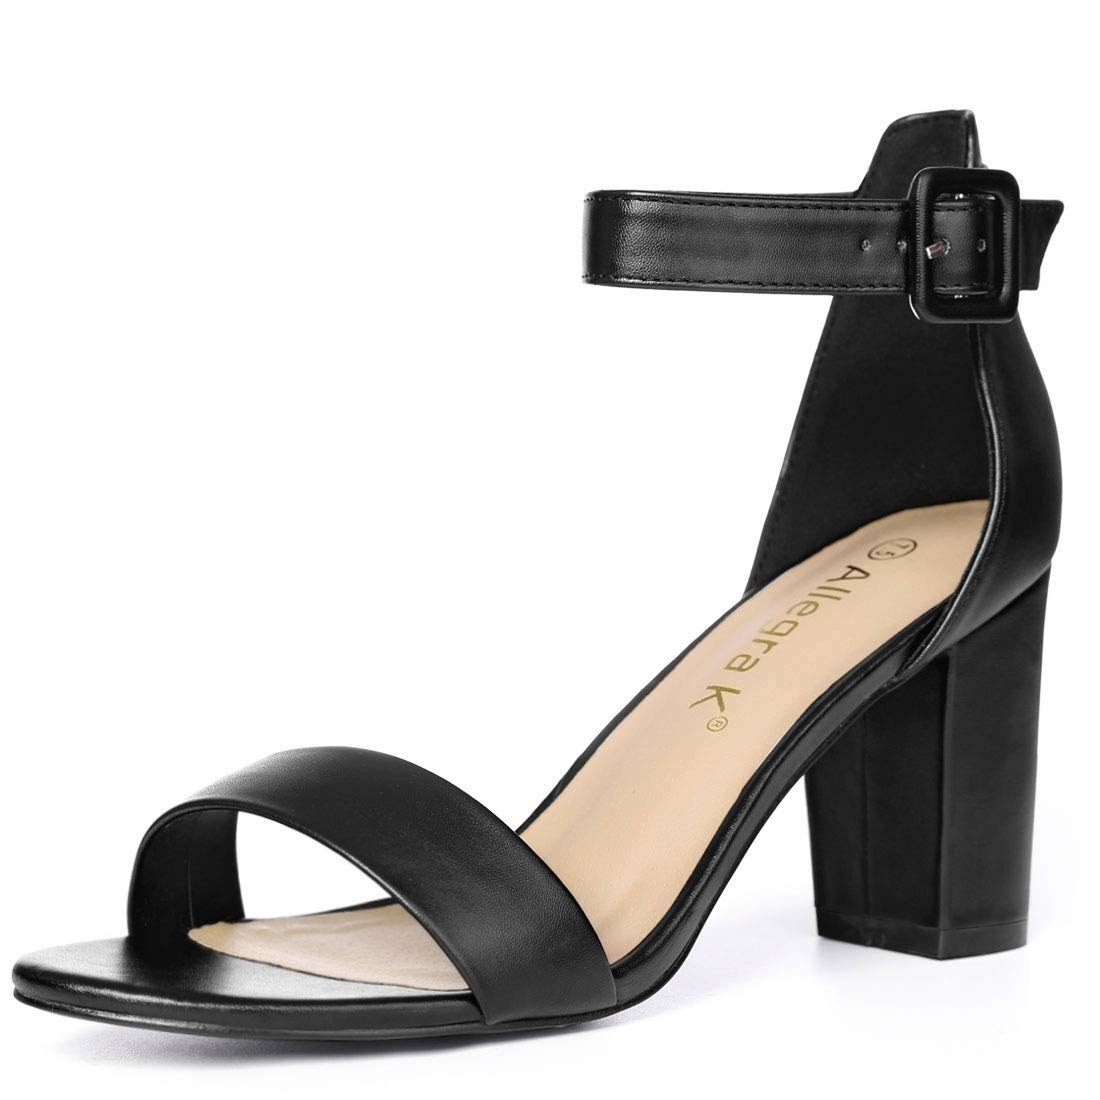 2440047e167 27 Inexpensive Shoes You'll Want On Your Feet Right NOW